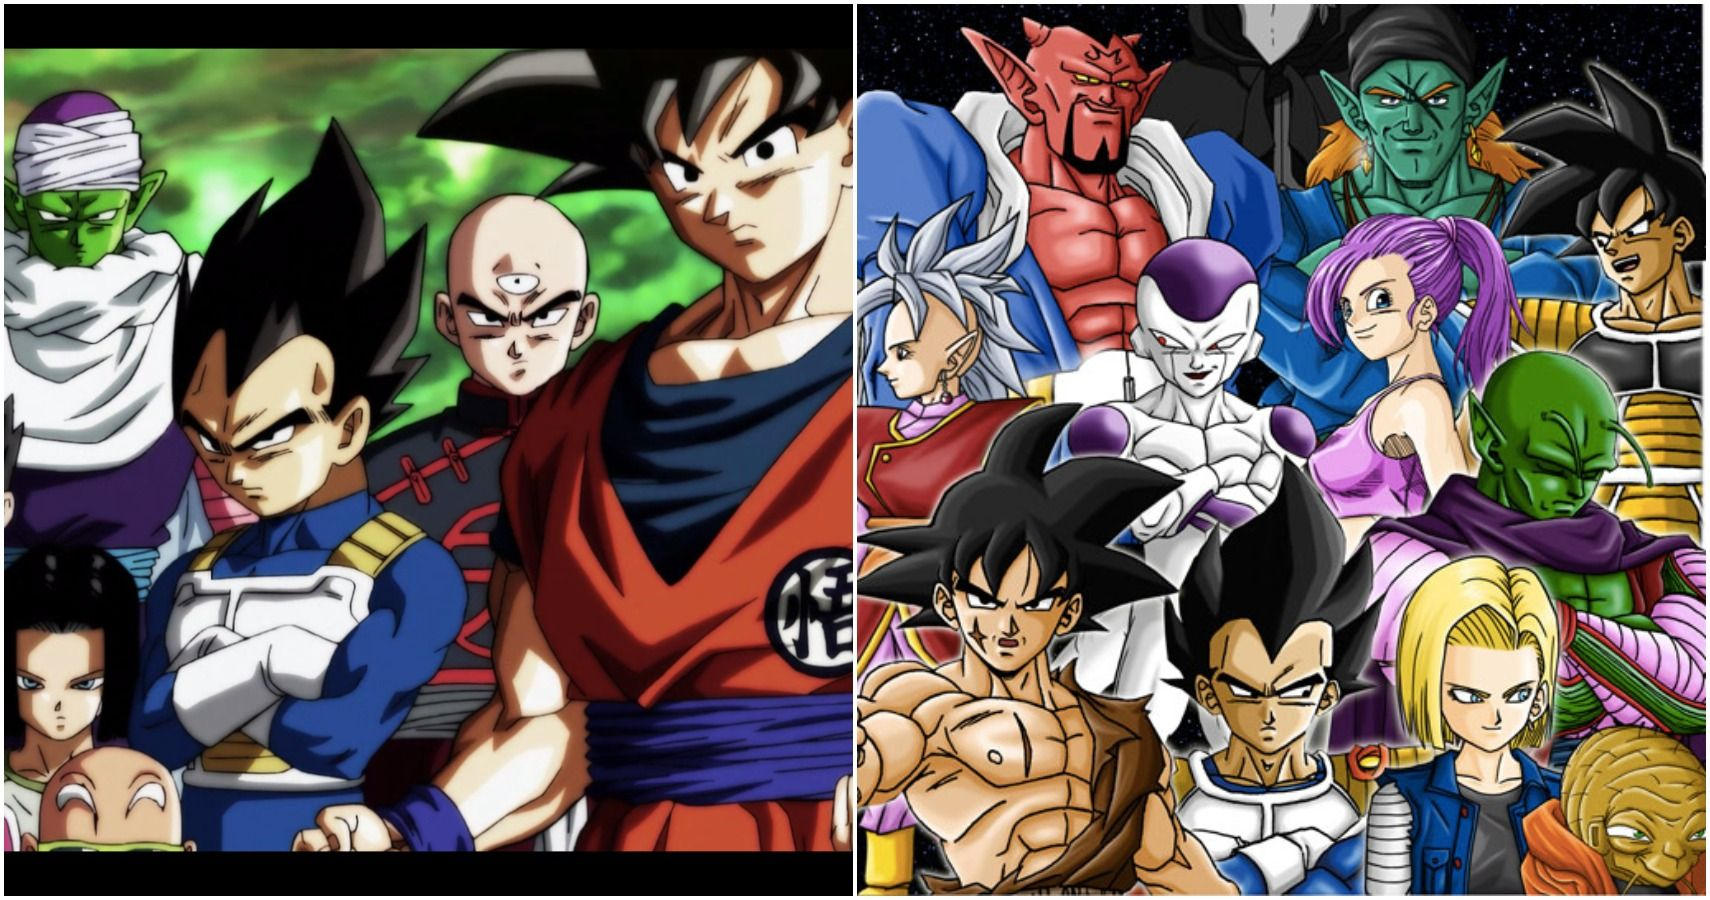 5 Things Dragon Ball Super Did Differently From Dragon Ball